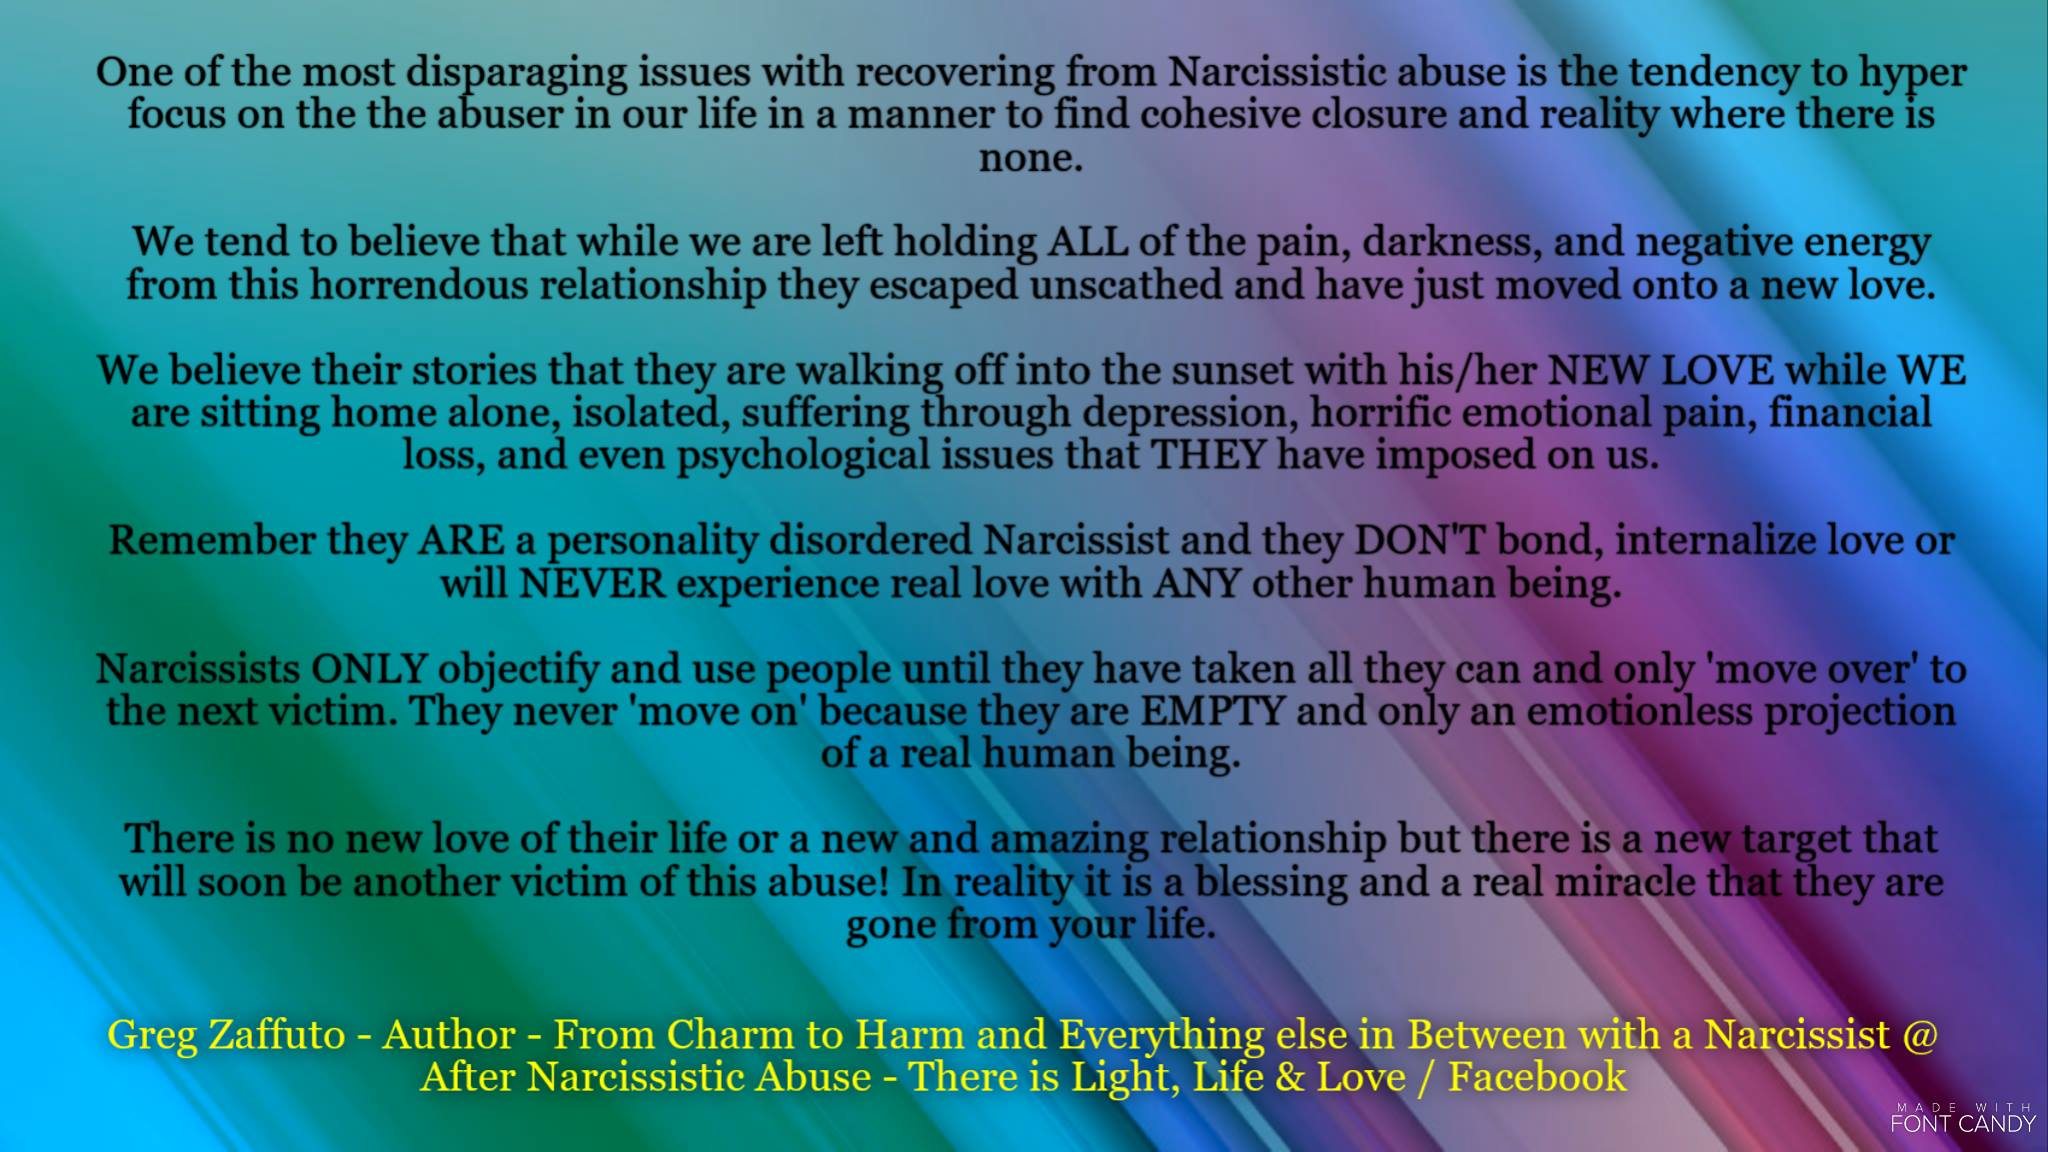 That Narcissist moved on so QUICKLY that there MUST be